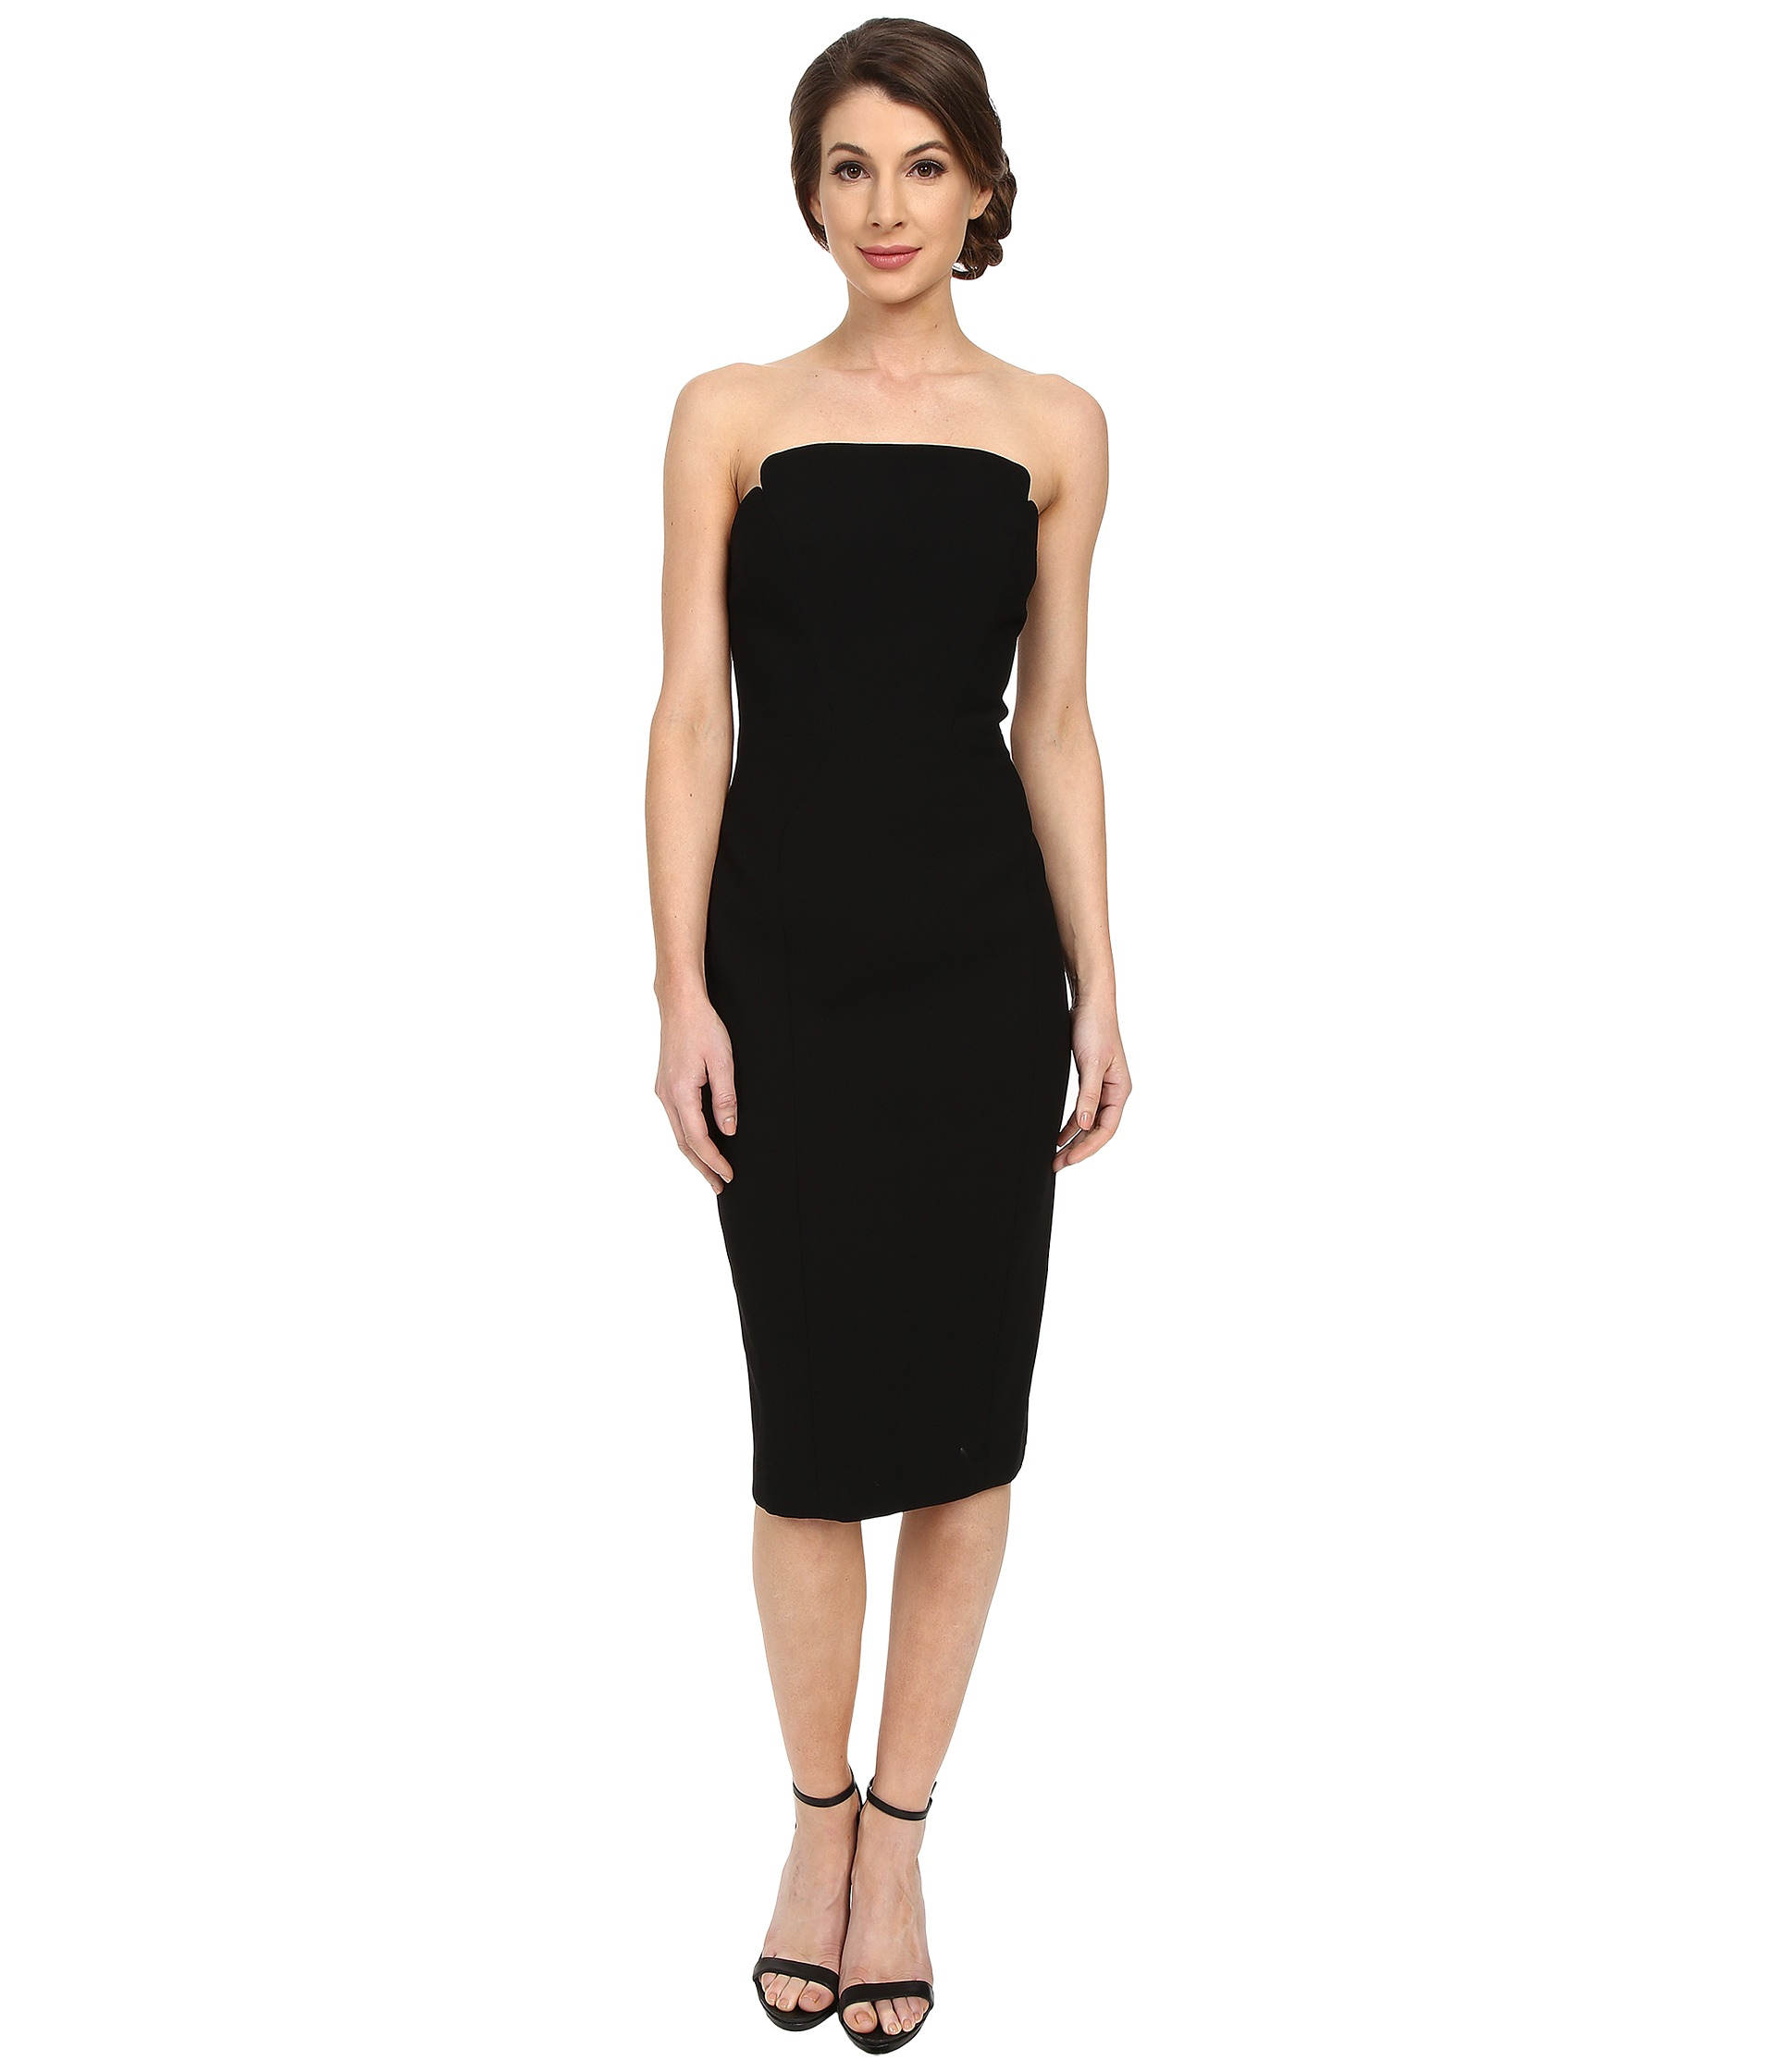 Jill jill stuart Strapless Knee Length Fitted Crepy Dress in Black ...